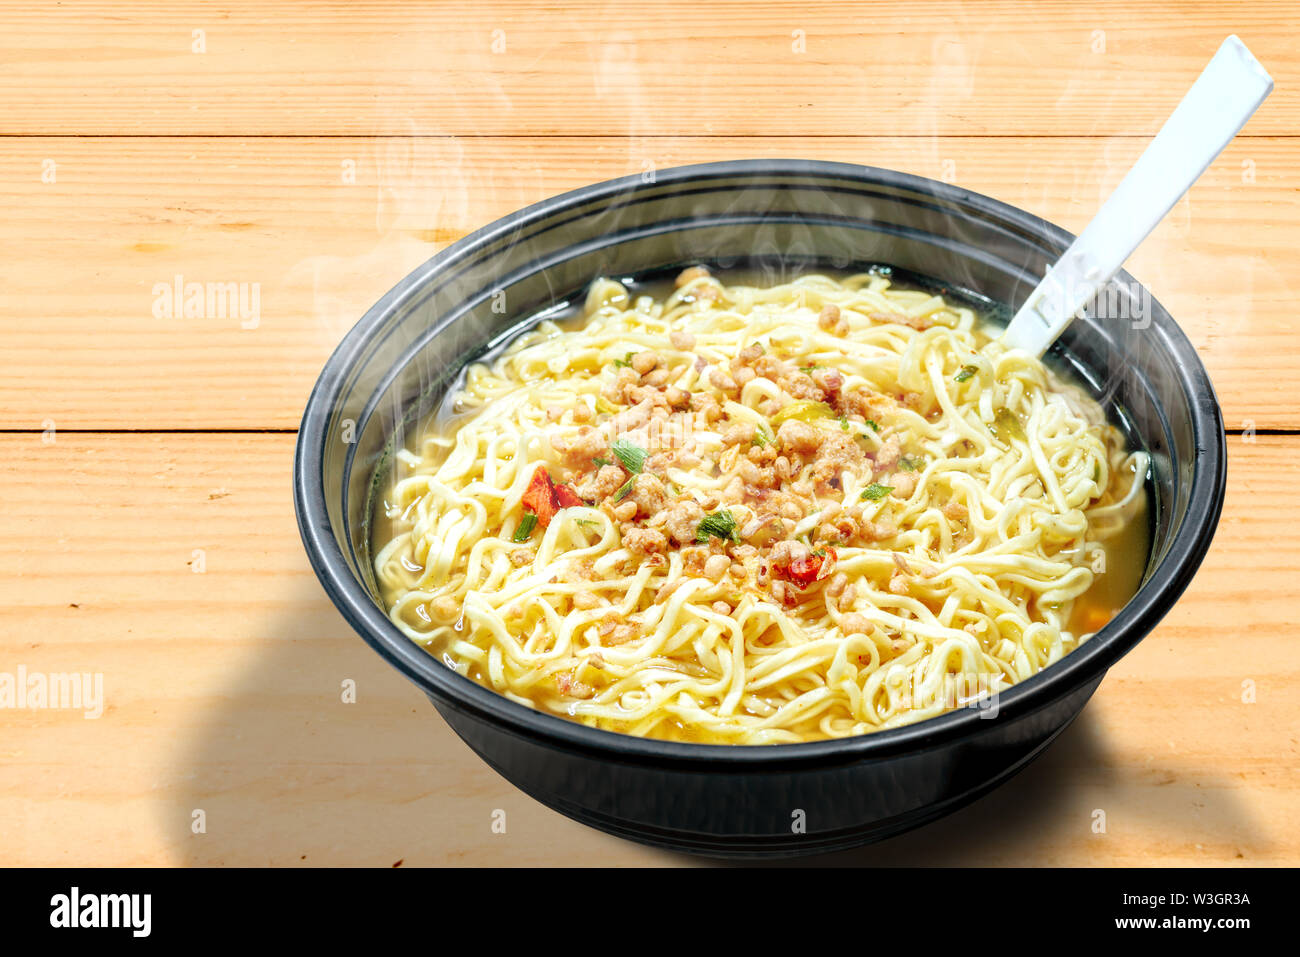 Noodles on the bowl with fork on wooden table background - Stock Image